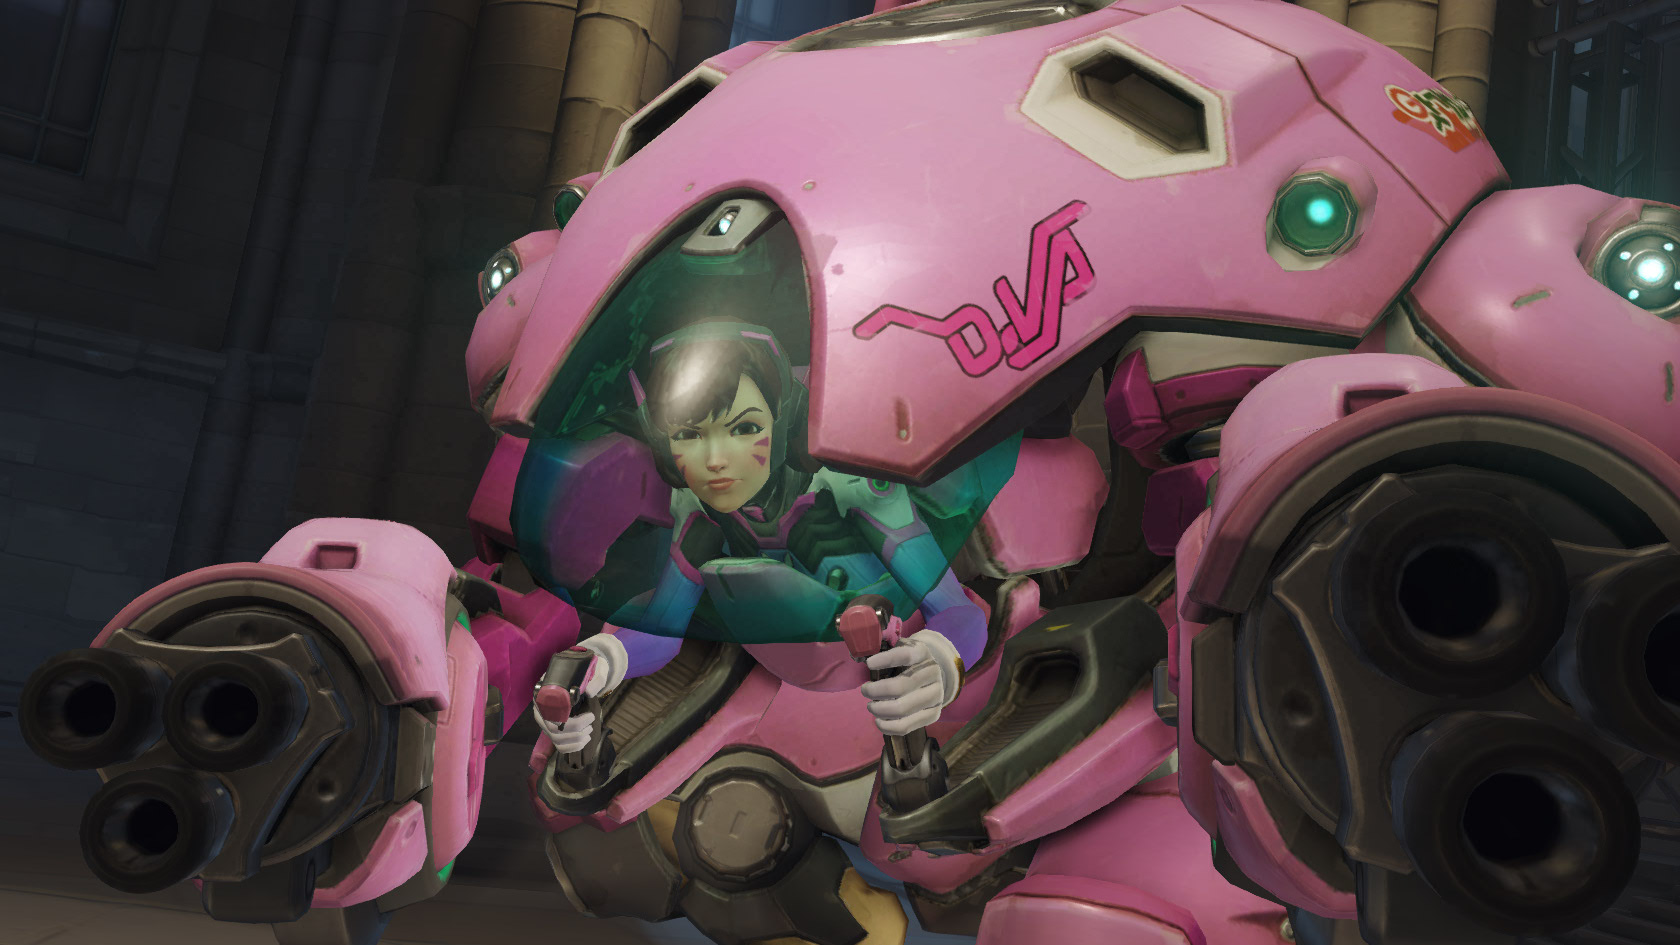 Overwatch Dva shooting